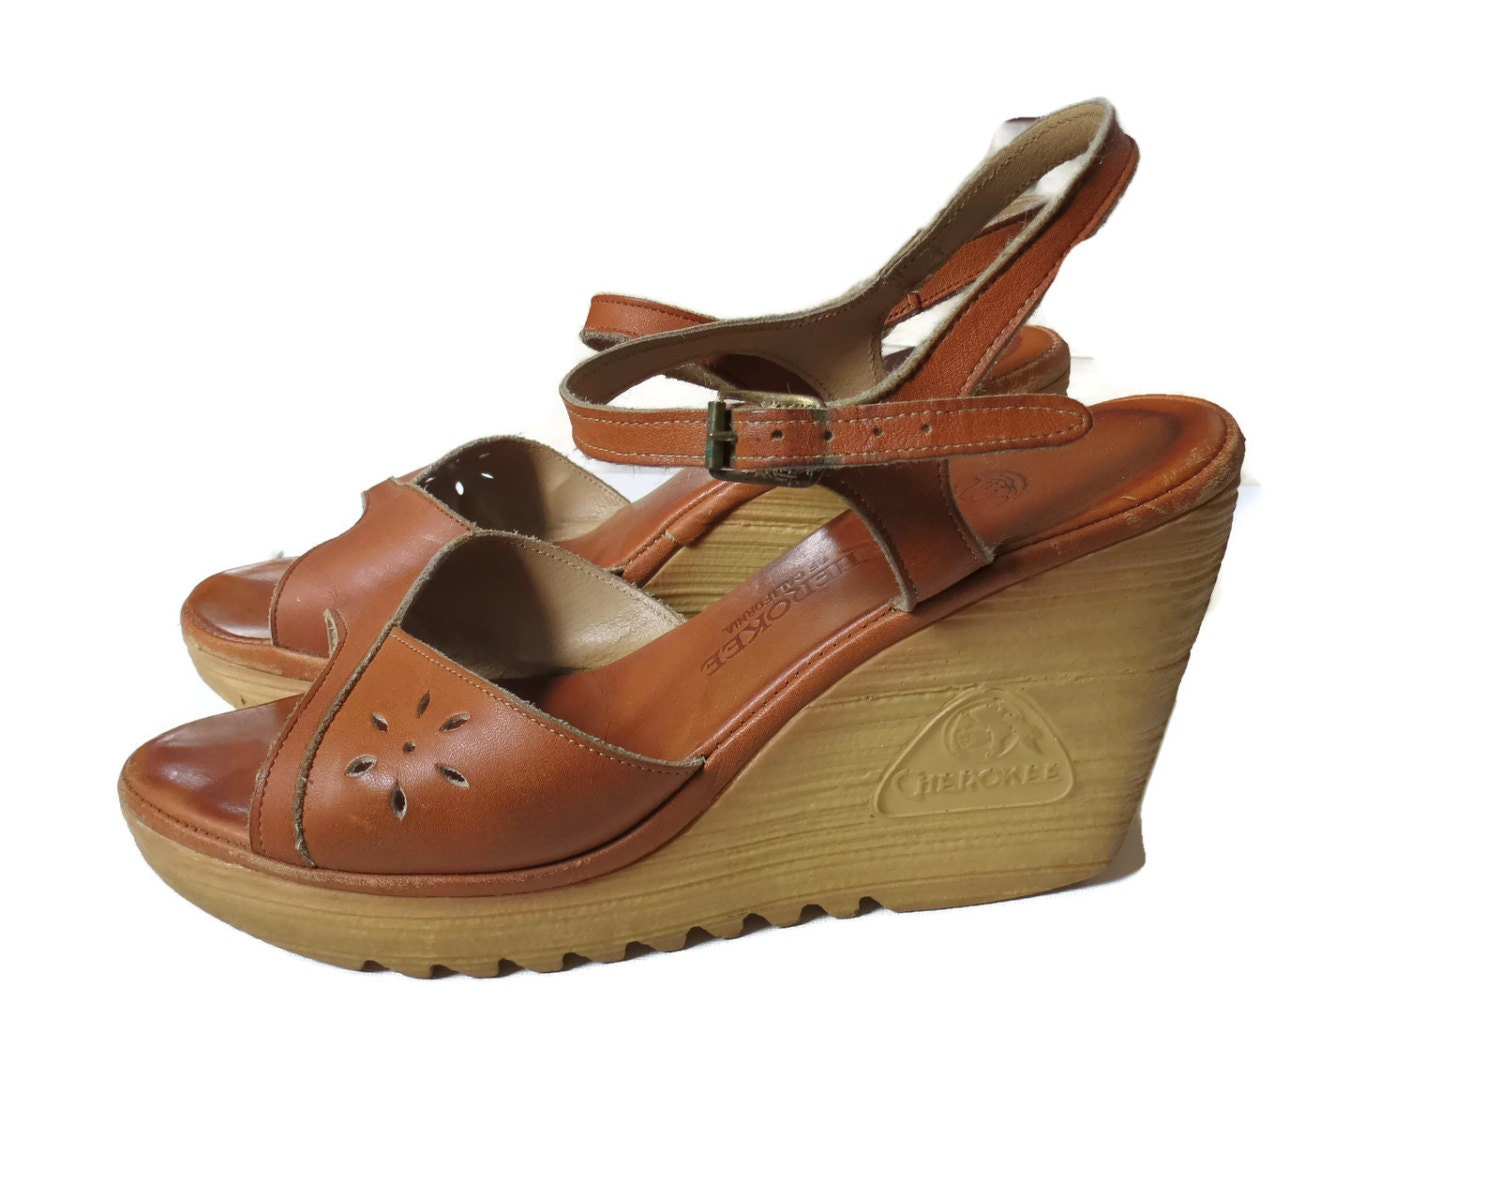 wedge sandals platform sandals 70s wedges 70s